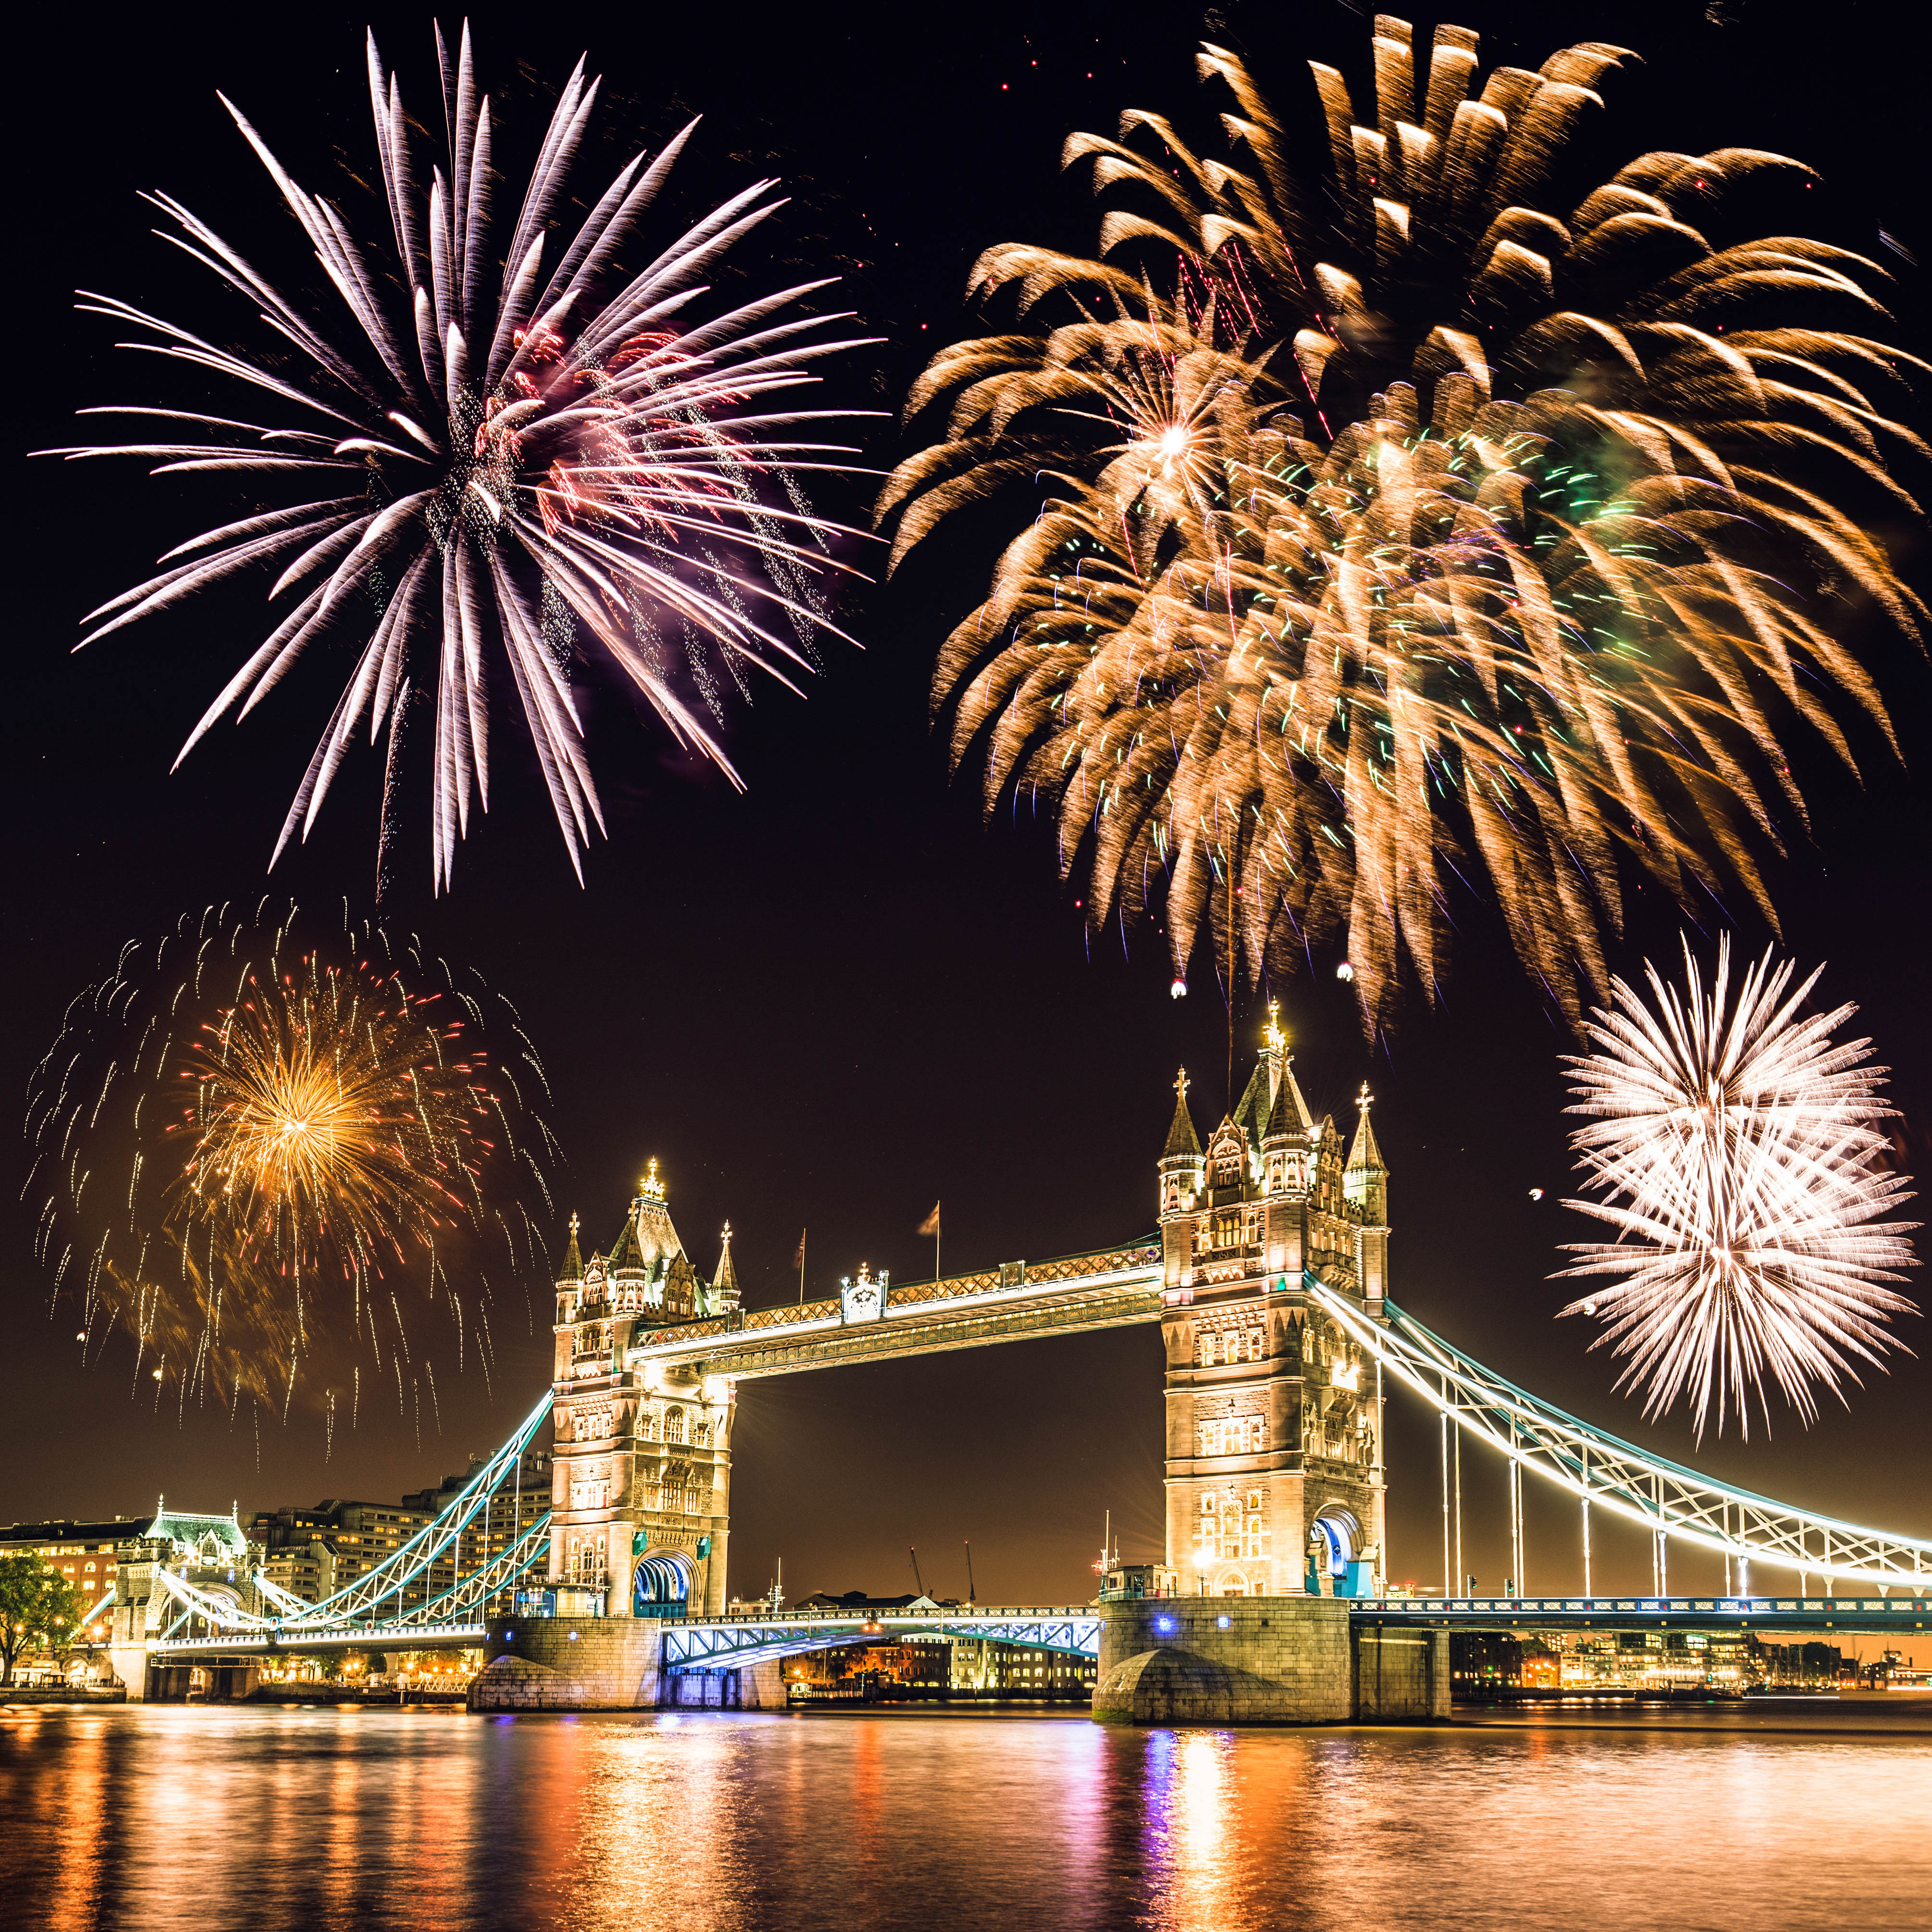 Silvester in london die spektakul rsten partys und events for Terrace new year party